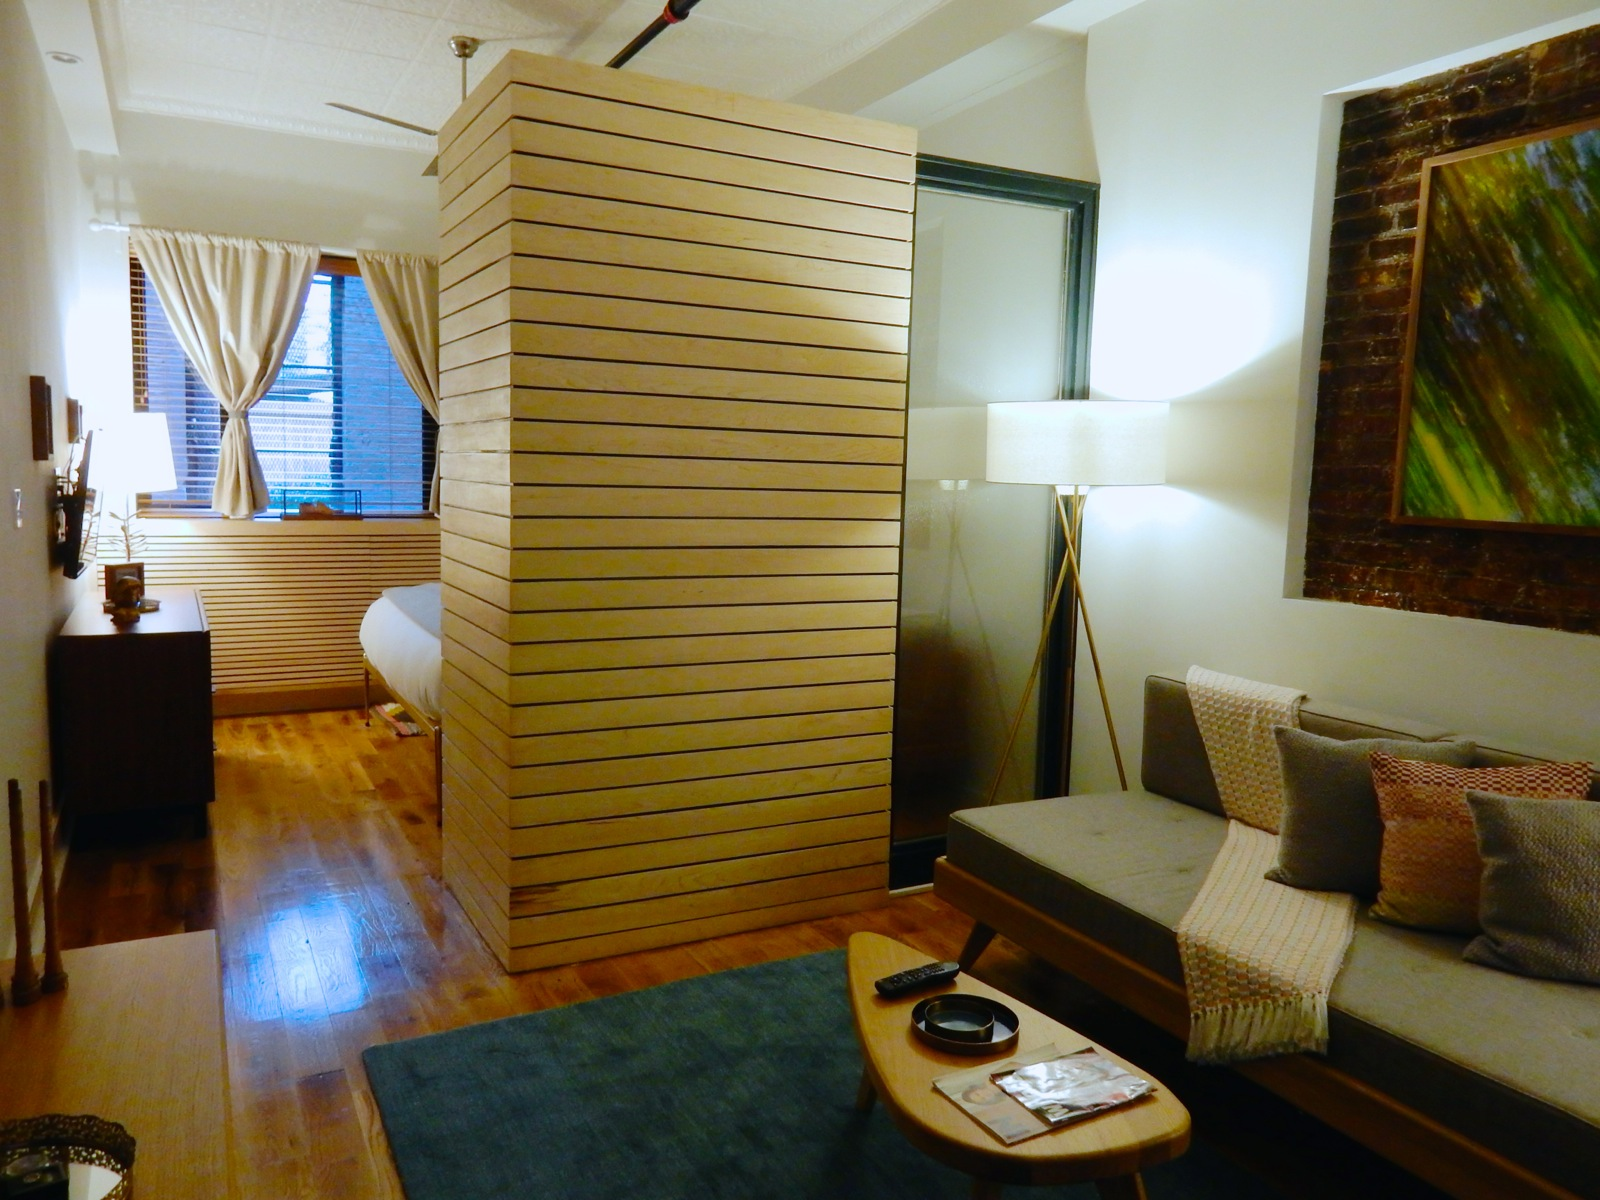 box house hotel henry norman hotel franklin guesthouse a trio